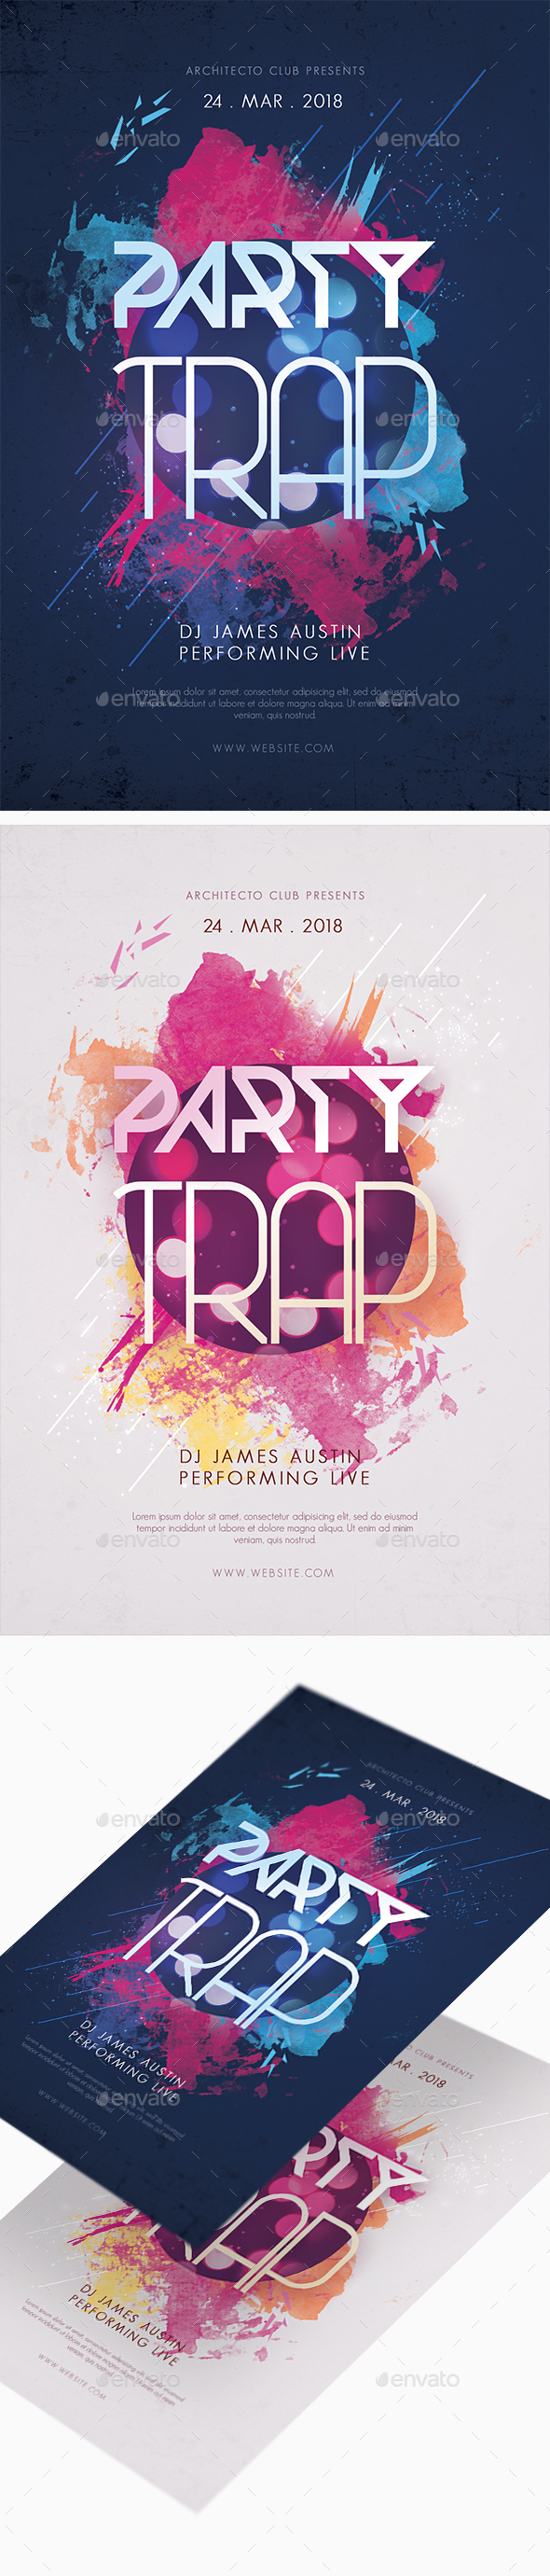 Party Invitaion Flyer - Clubs & Parties Events